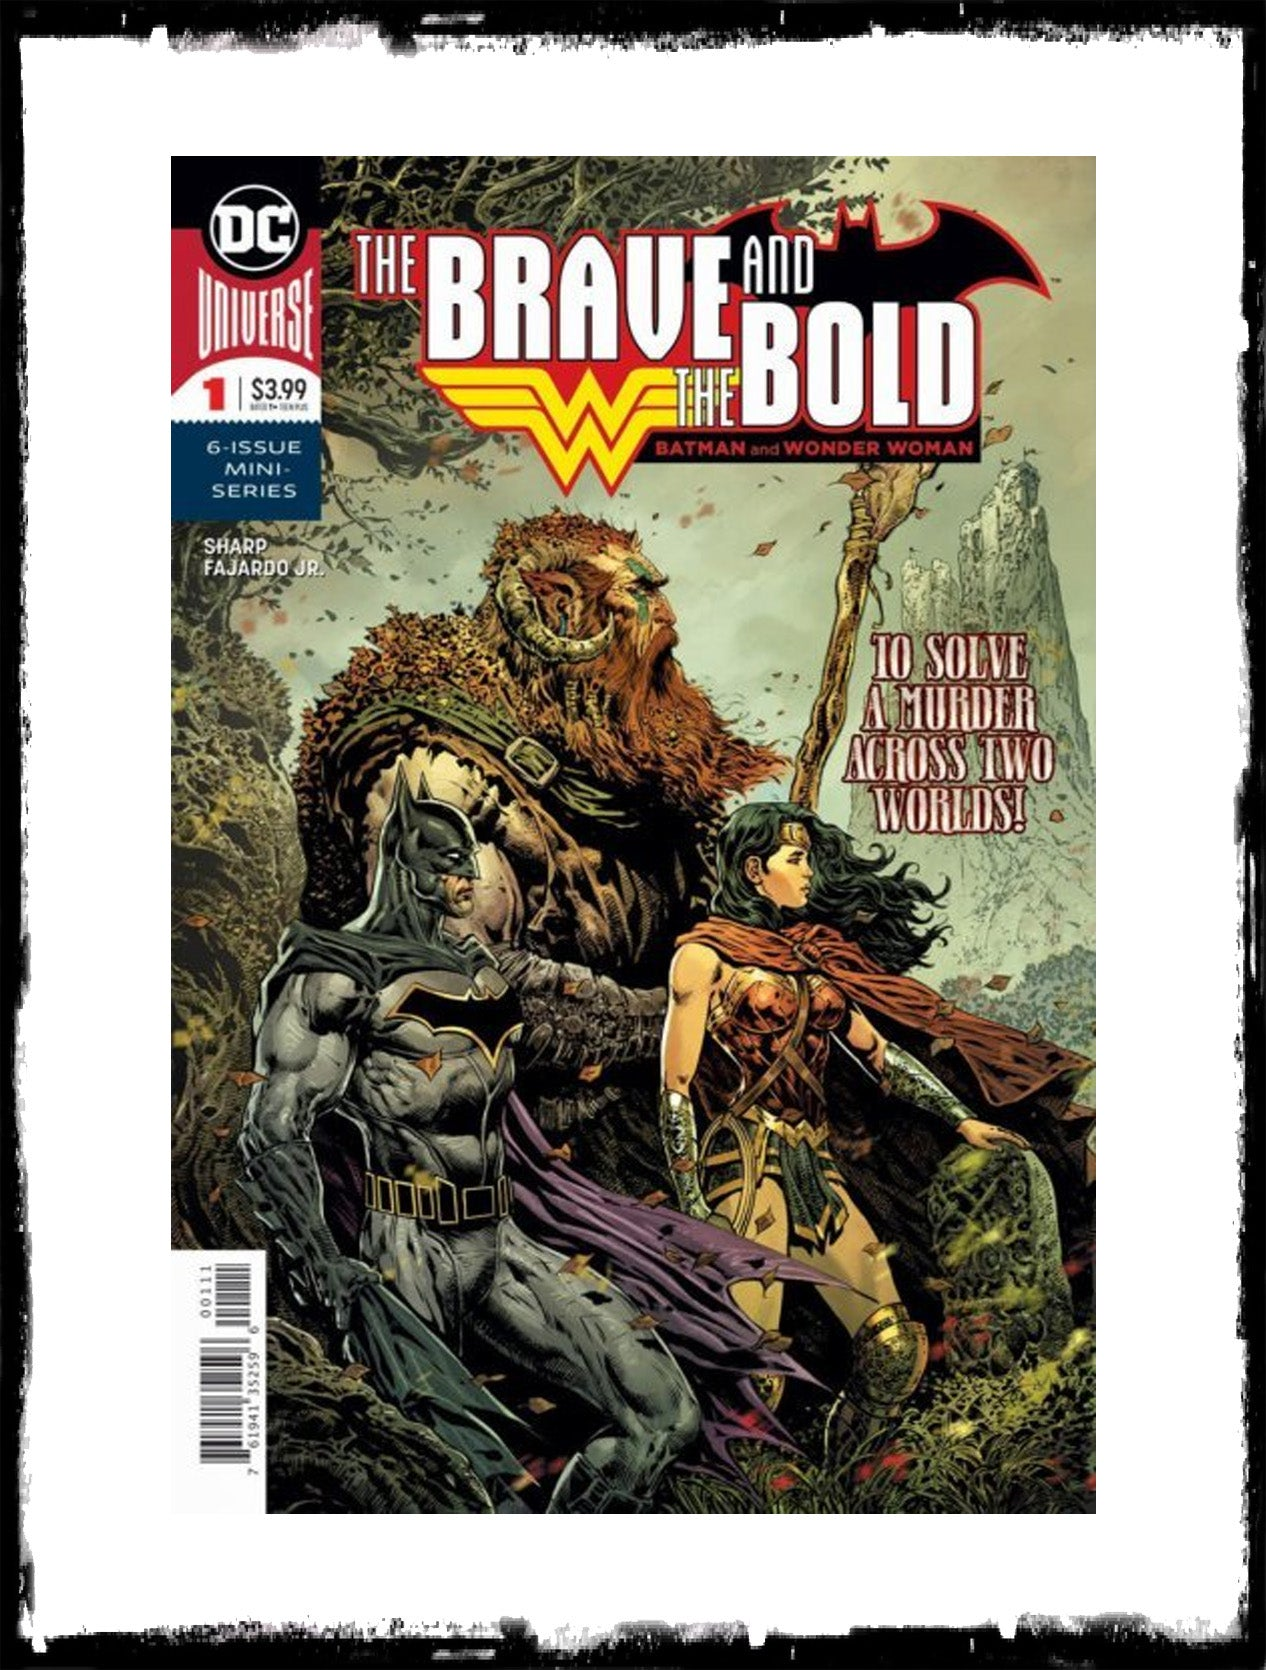 BRAVE AND THE BOLD: BATMAN AND WONDER WOMAN - #1 (2018 - CONDITION NM)